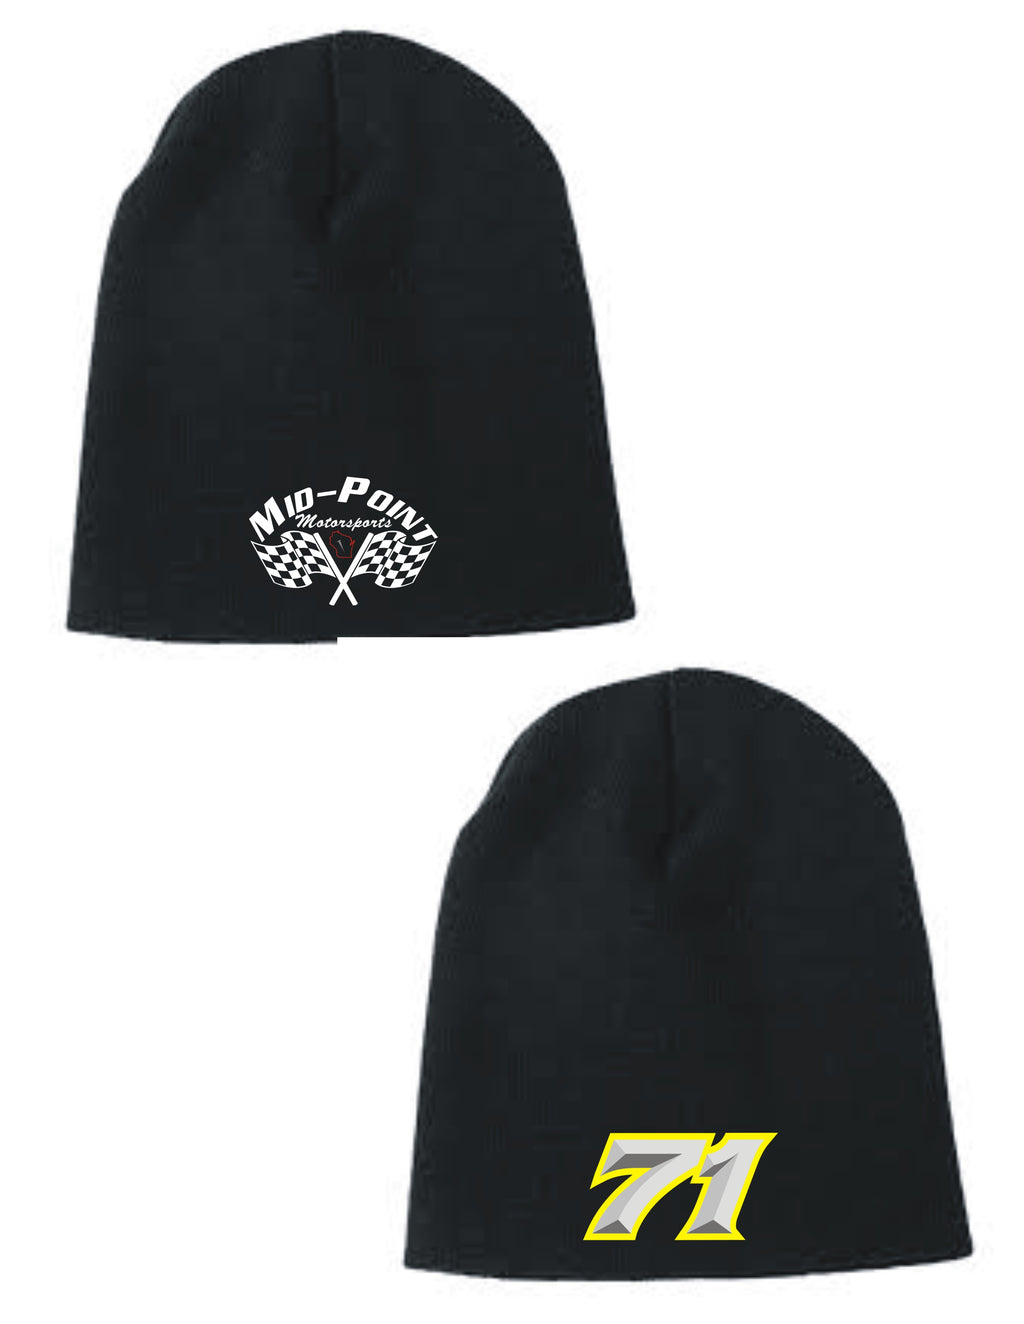 Mid-Point / Ovadal Beanie